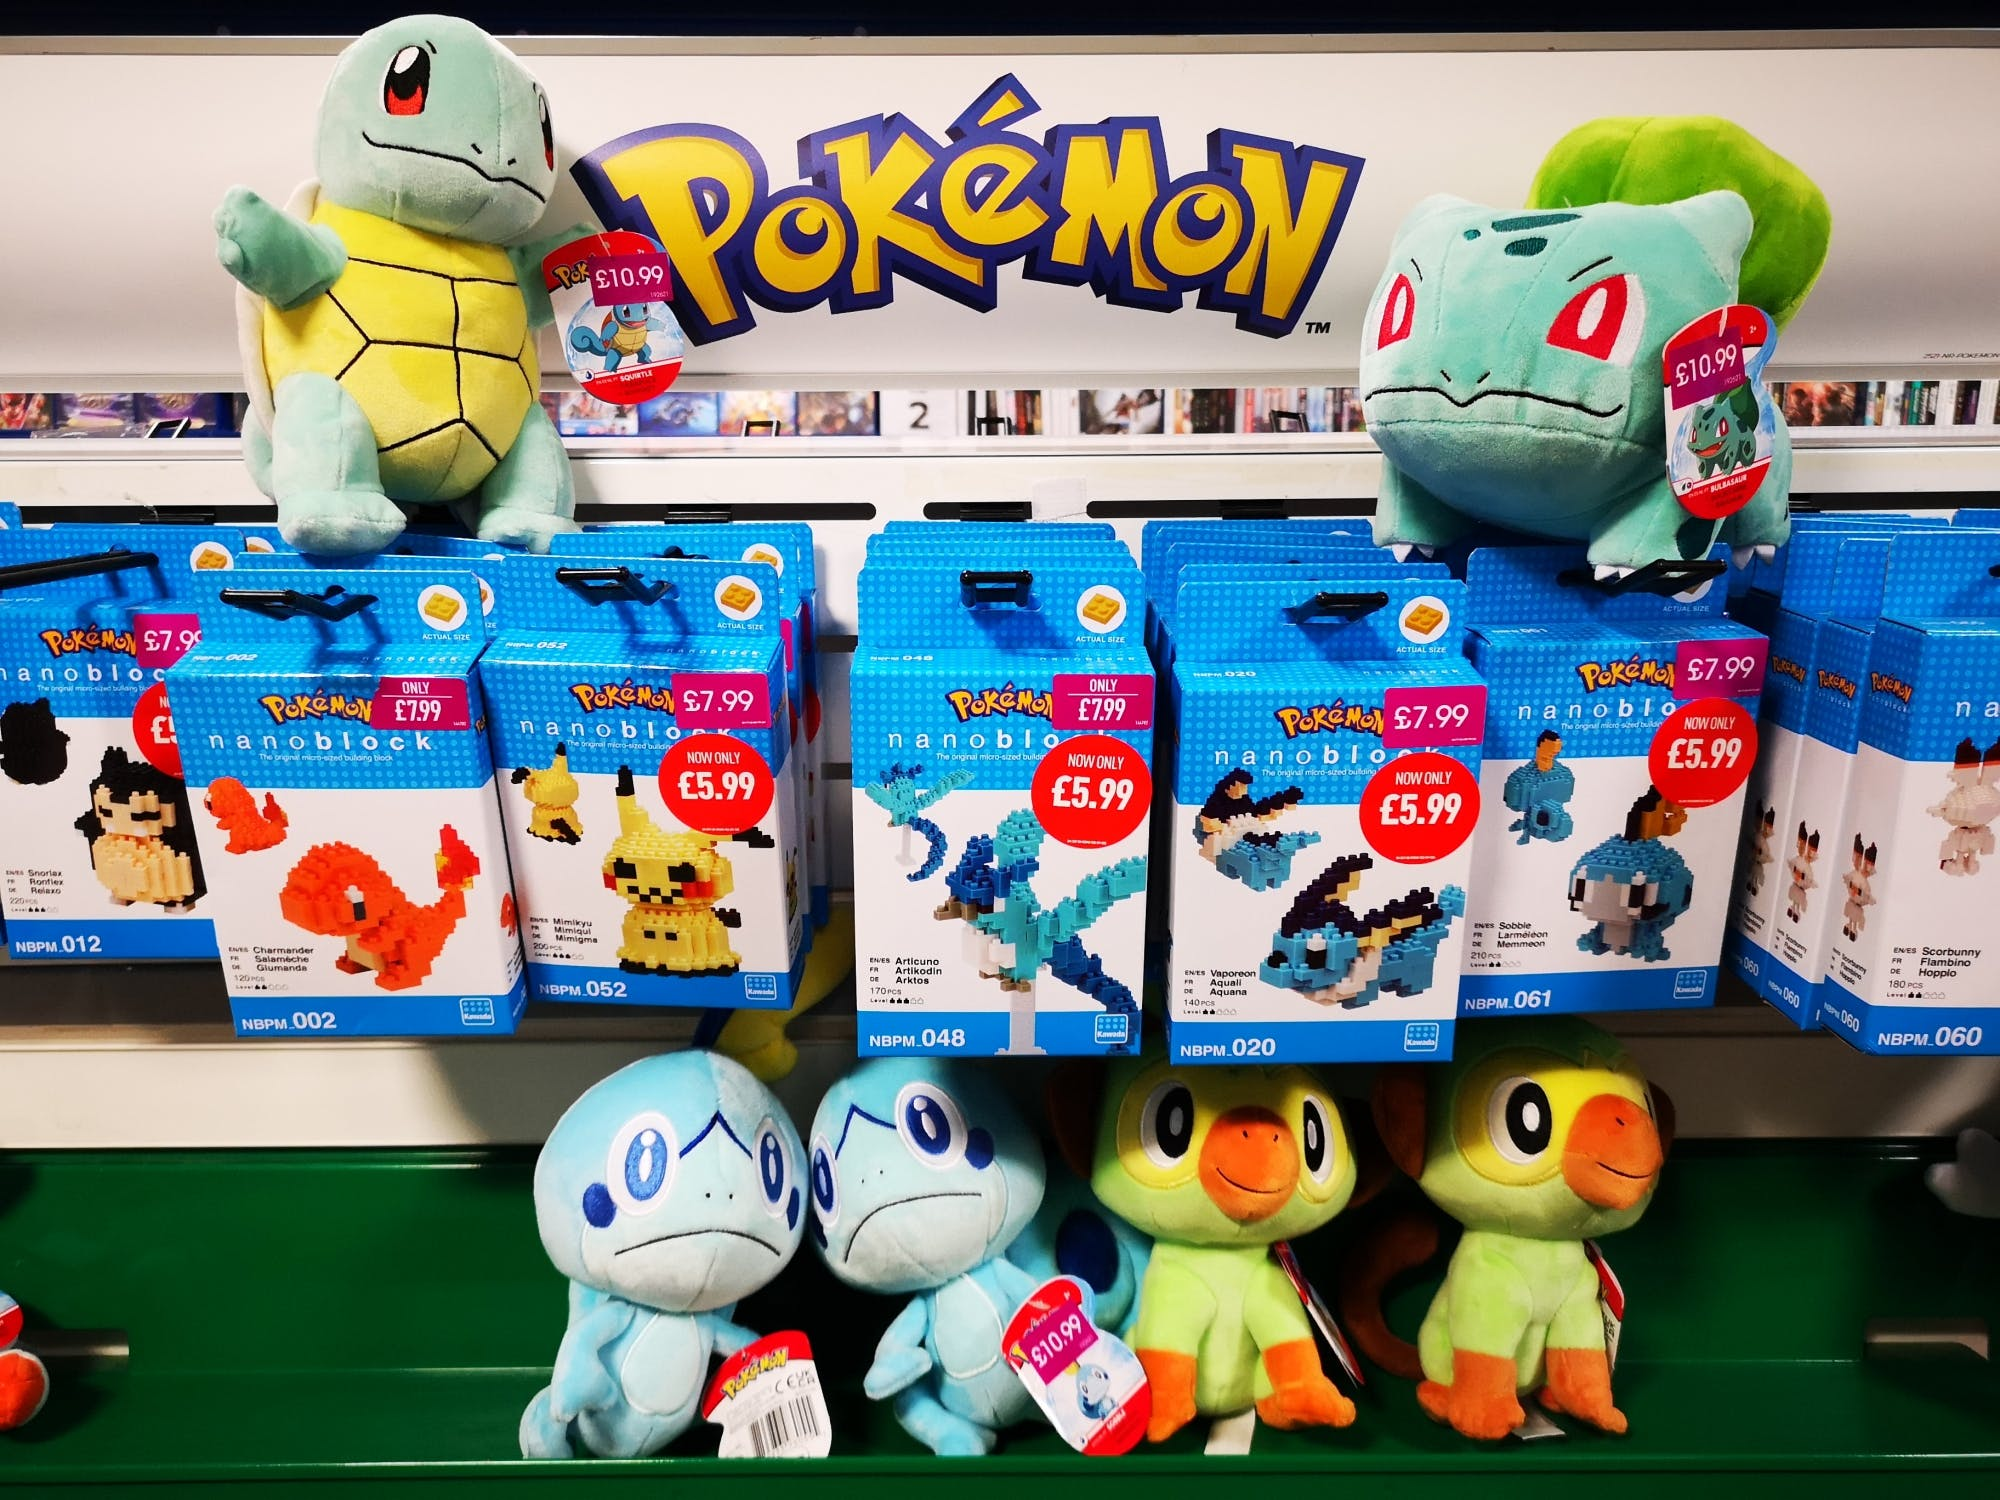 We know Pokemon is massive in Wakey so catch 'em all at great prices, from plush toys to games and everything in between. From £5.99